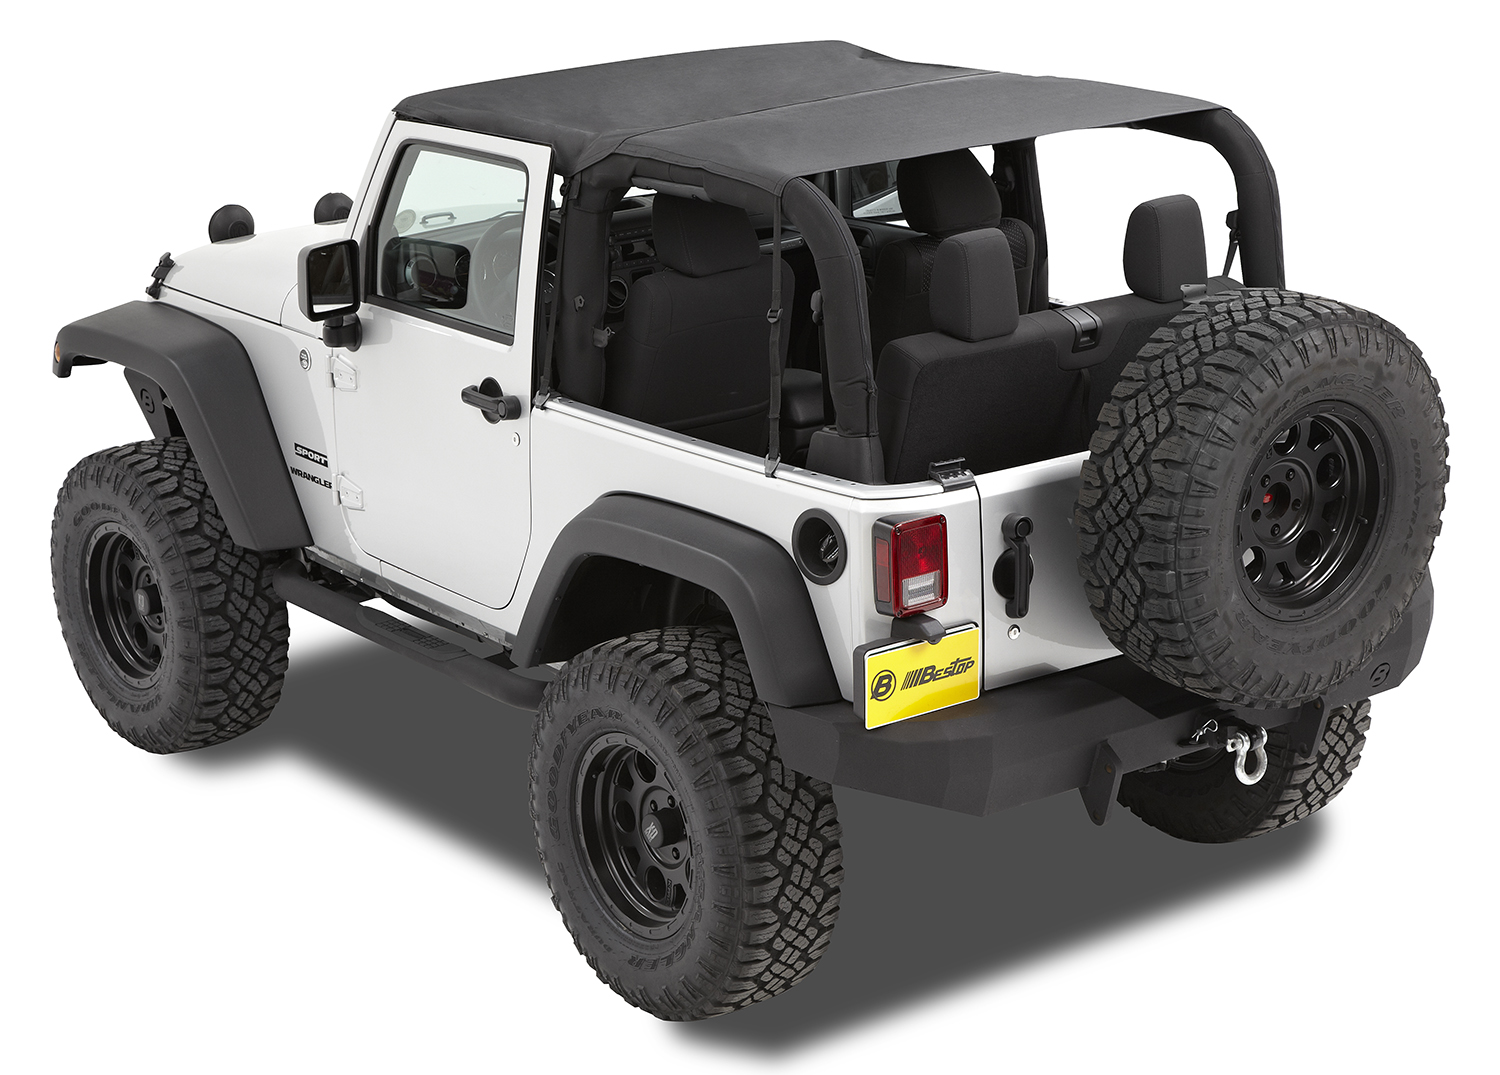 Bestop 52583-35 Black Diamond Header Extended Safari Style Bikini Top Jeep Wrangler 2-Door 2010-2018